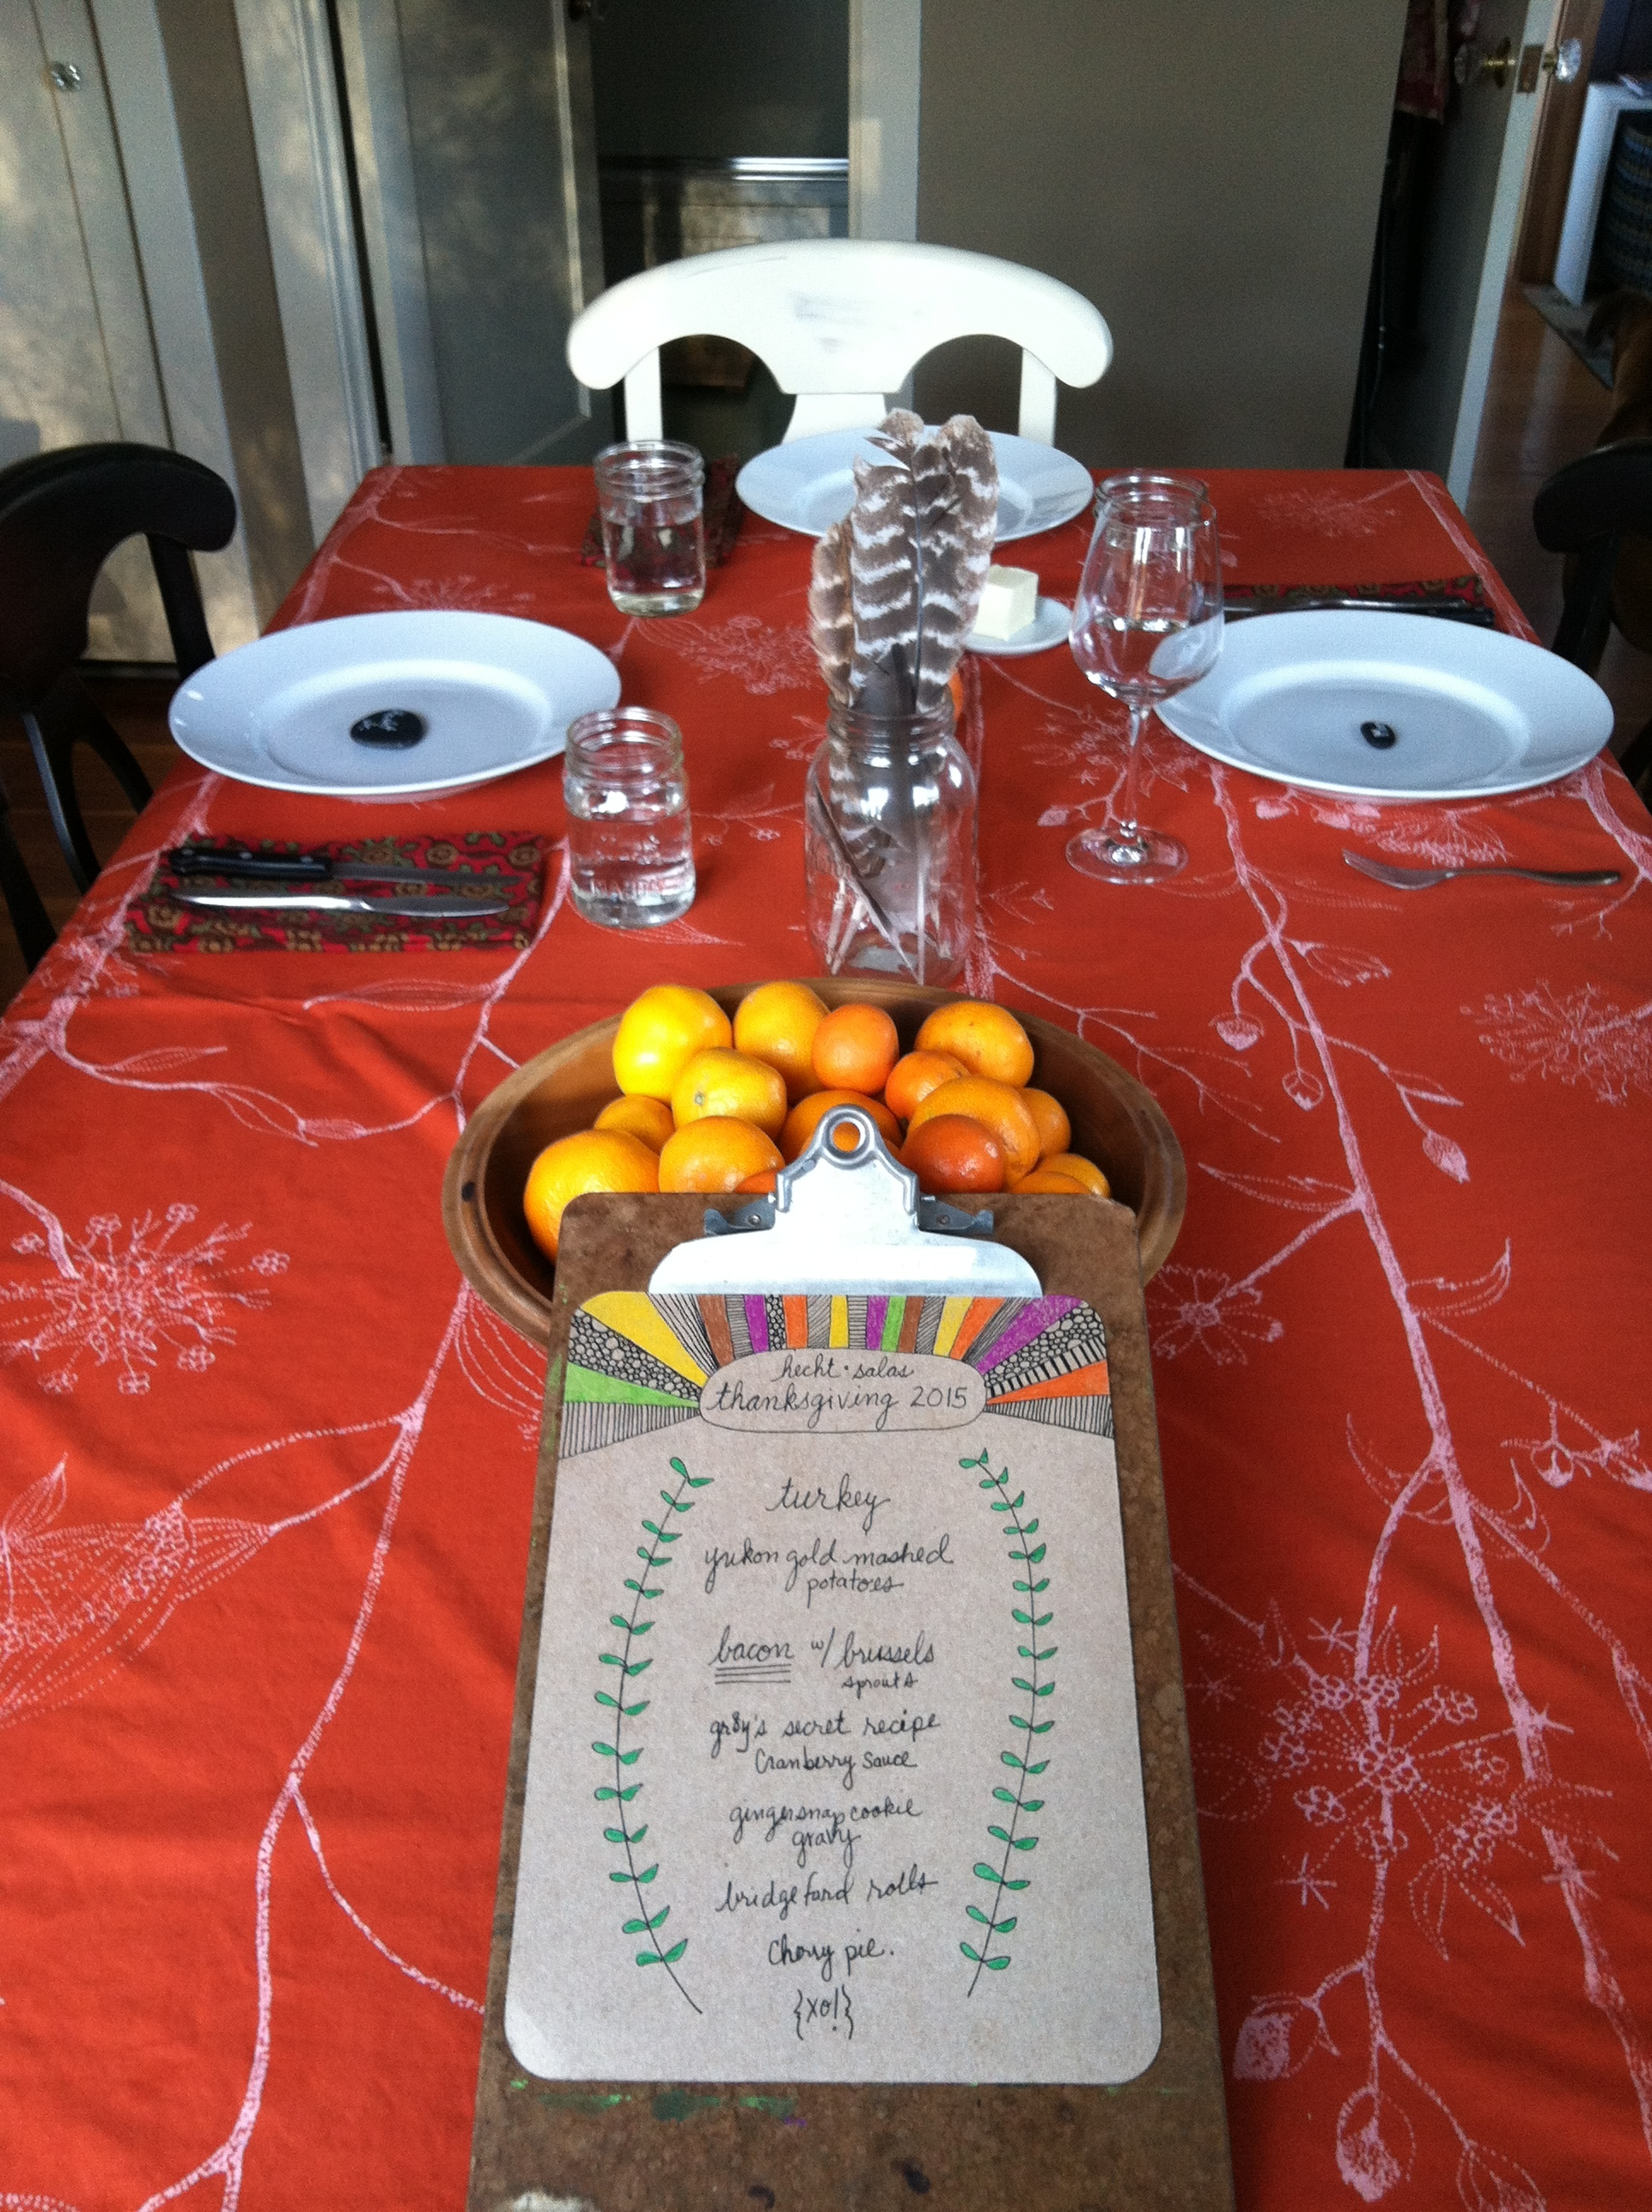 Our sweet + simple table for Thanksgiving 2015